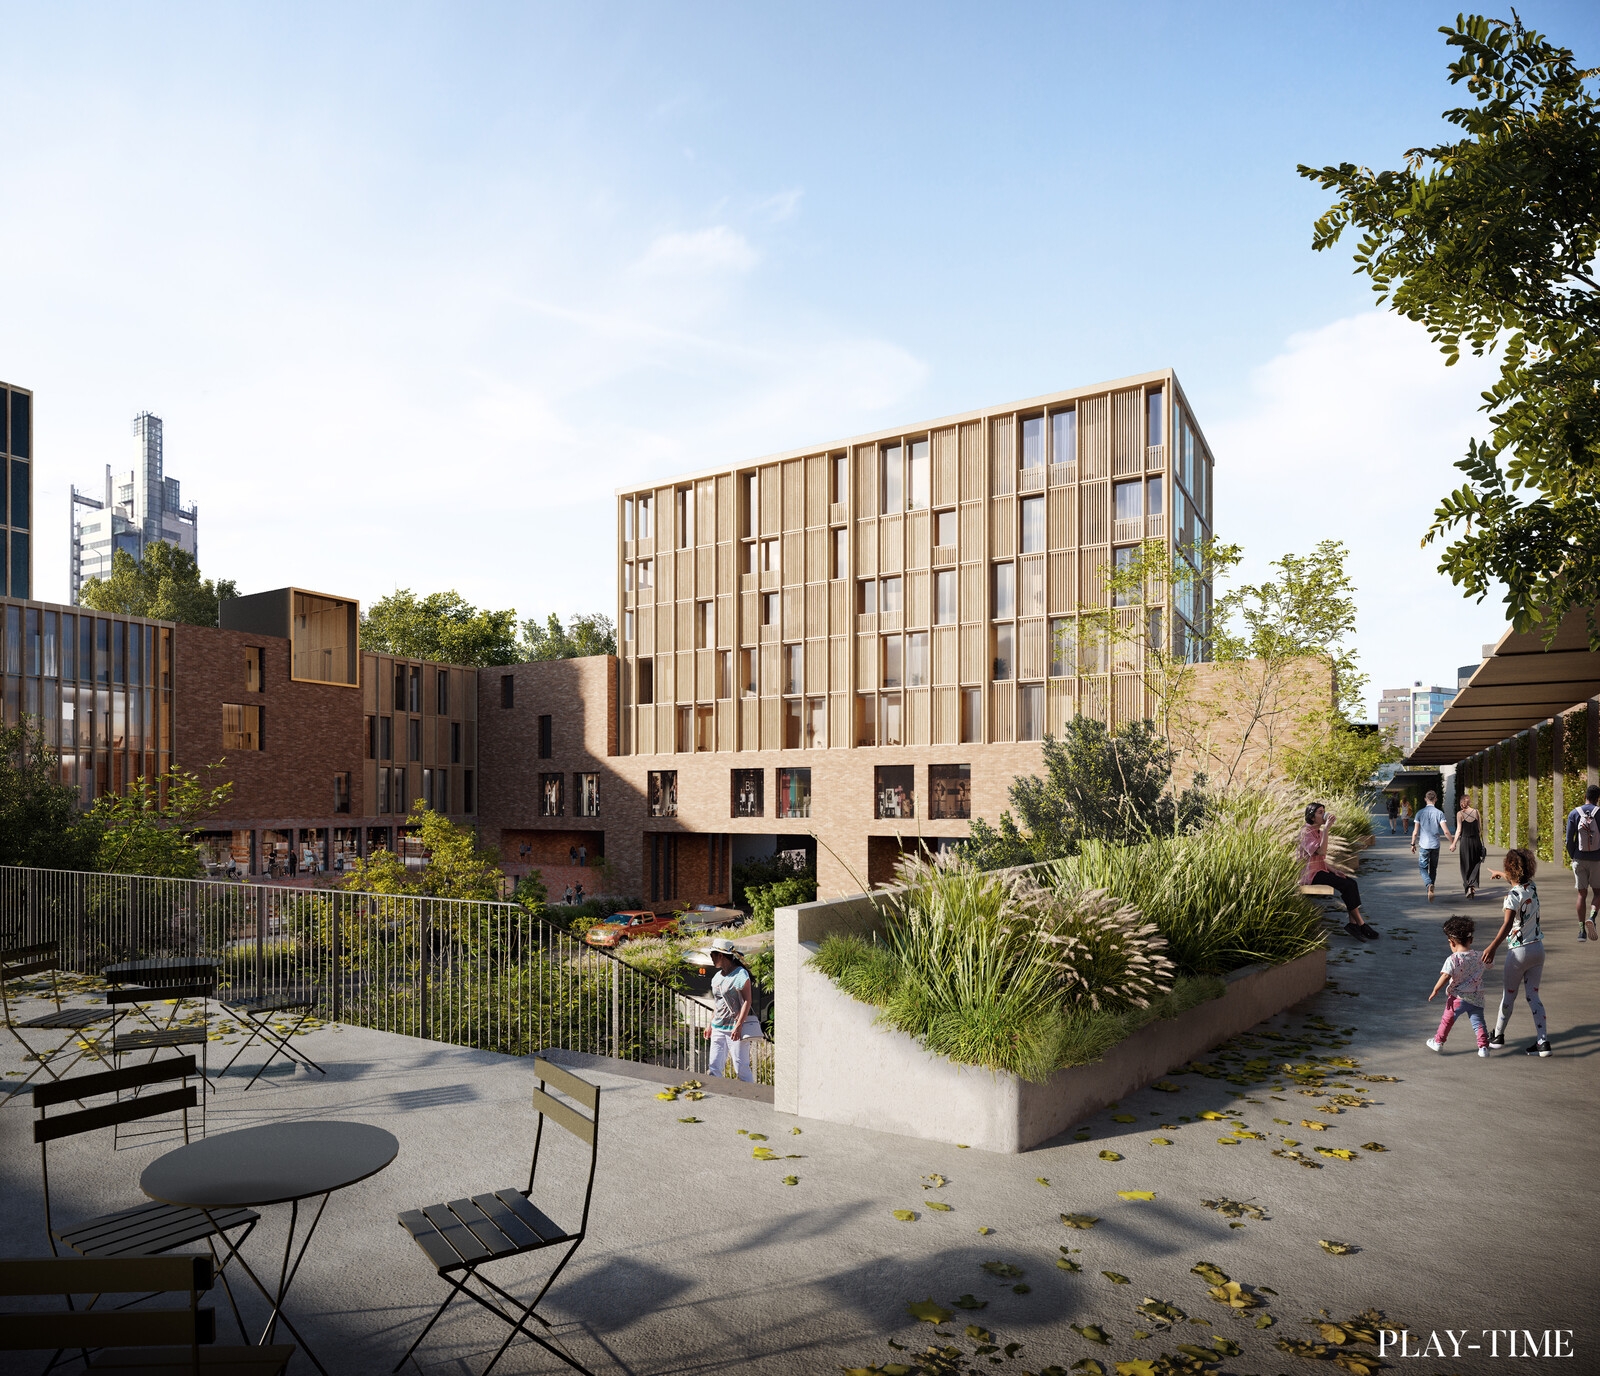 Helsinki Eastern Center International Competition by Harris Kjisik Architects . Image by Play-time